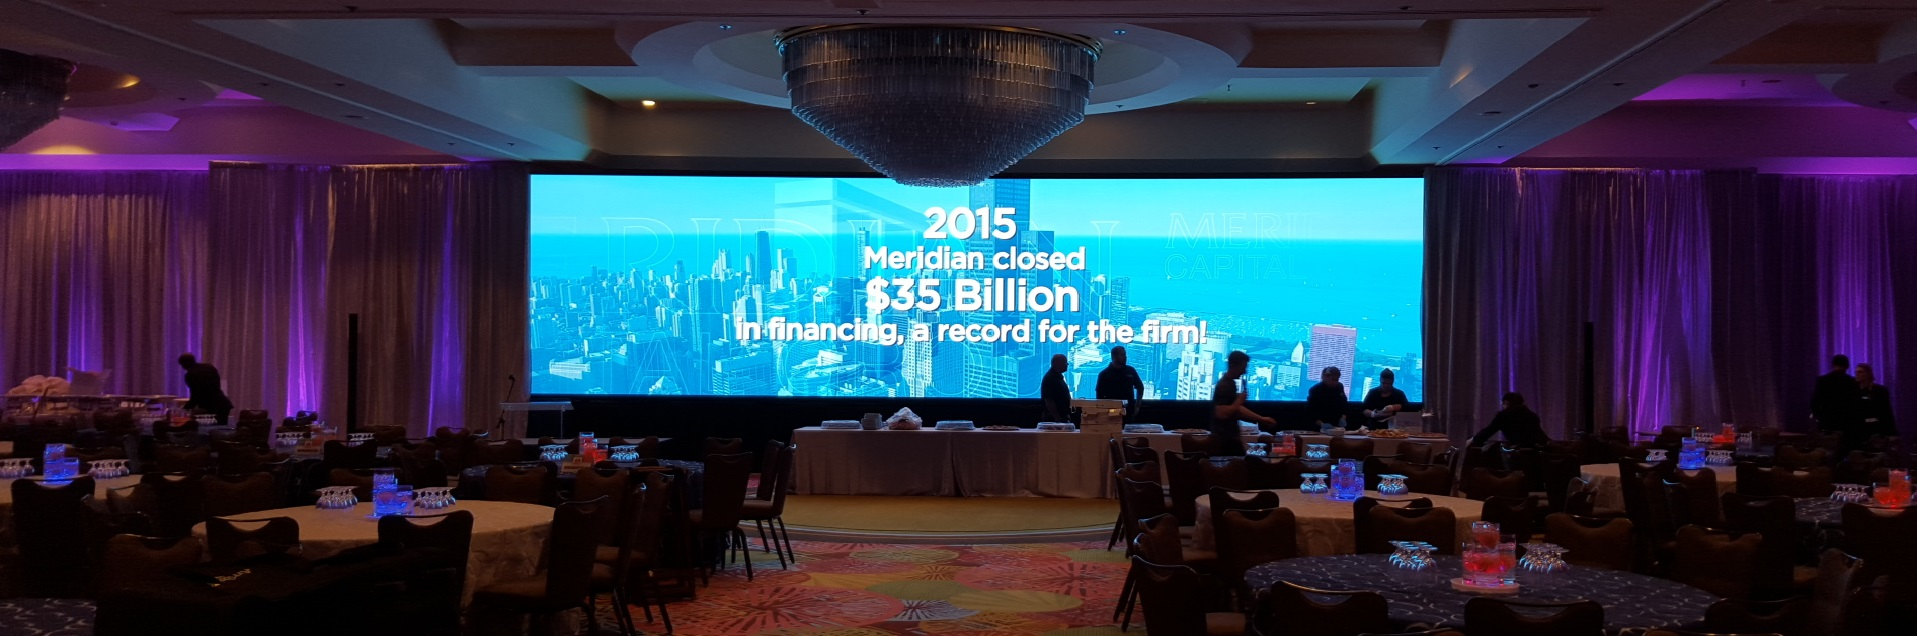 LED Video Wall rentals for hire of Orlando Florida